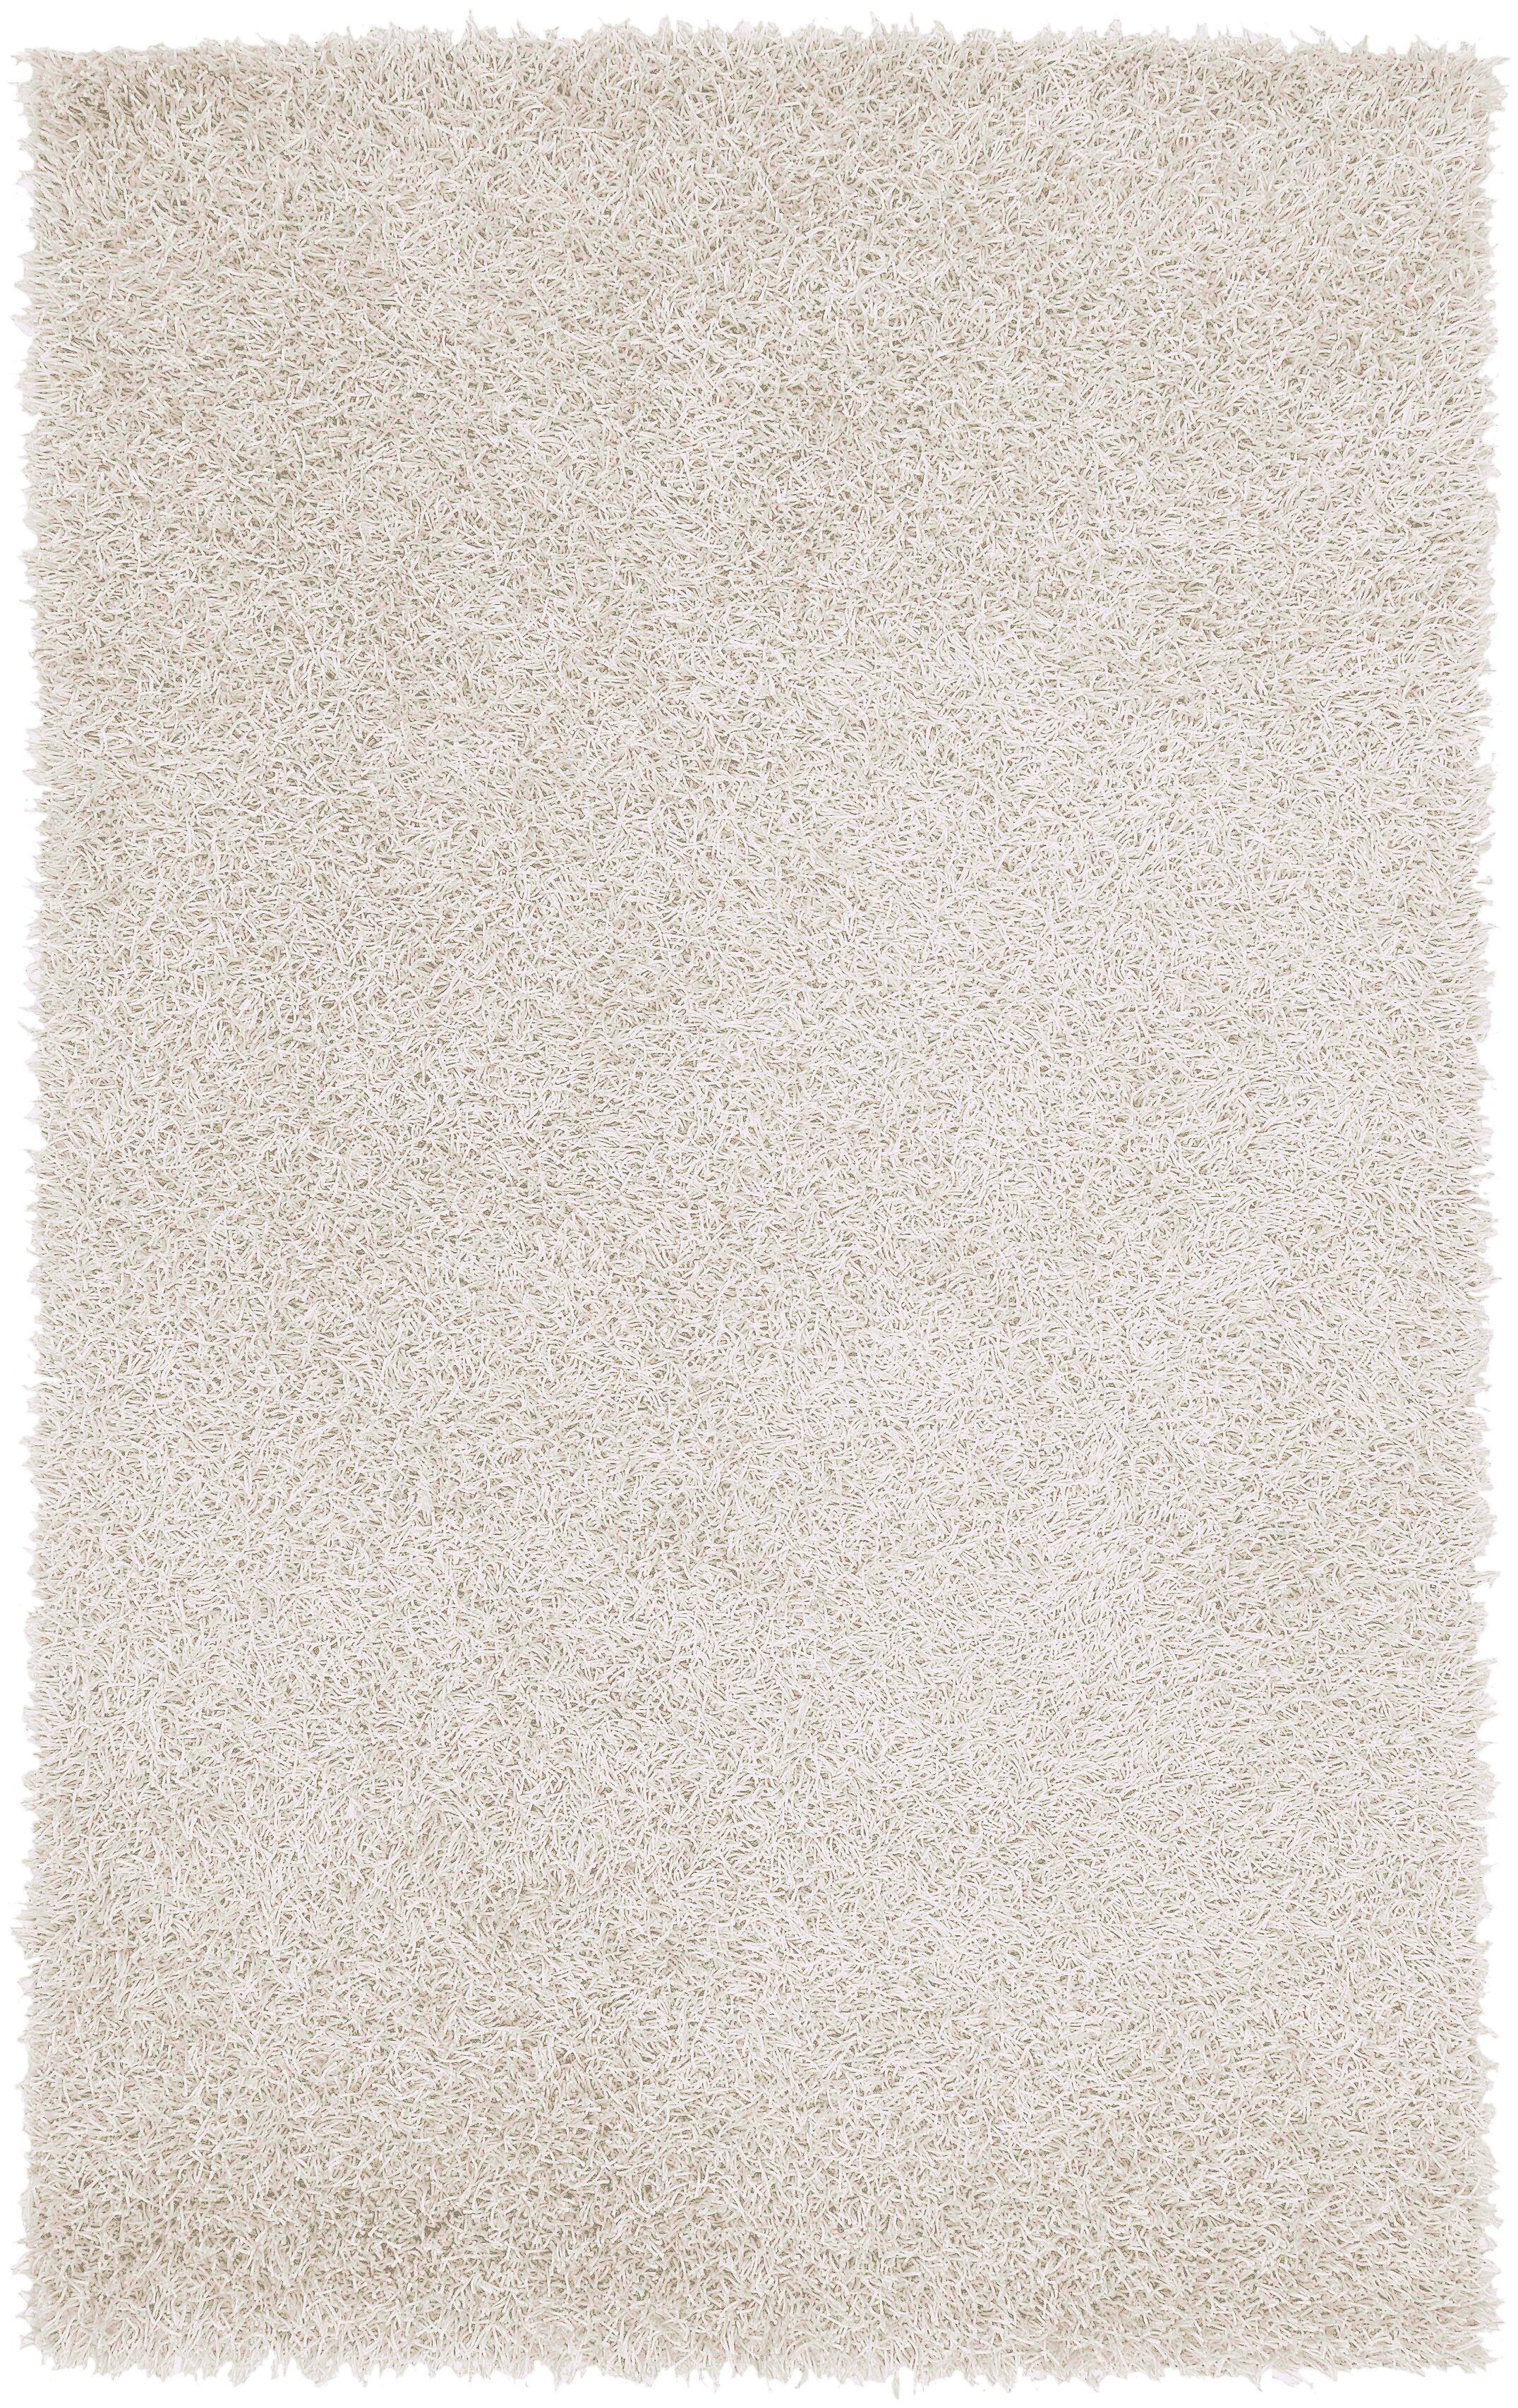 Bonomo Hand Woven Ivory Area Rug Rug Size: Rectangle 5' x 8'